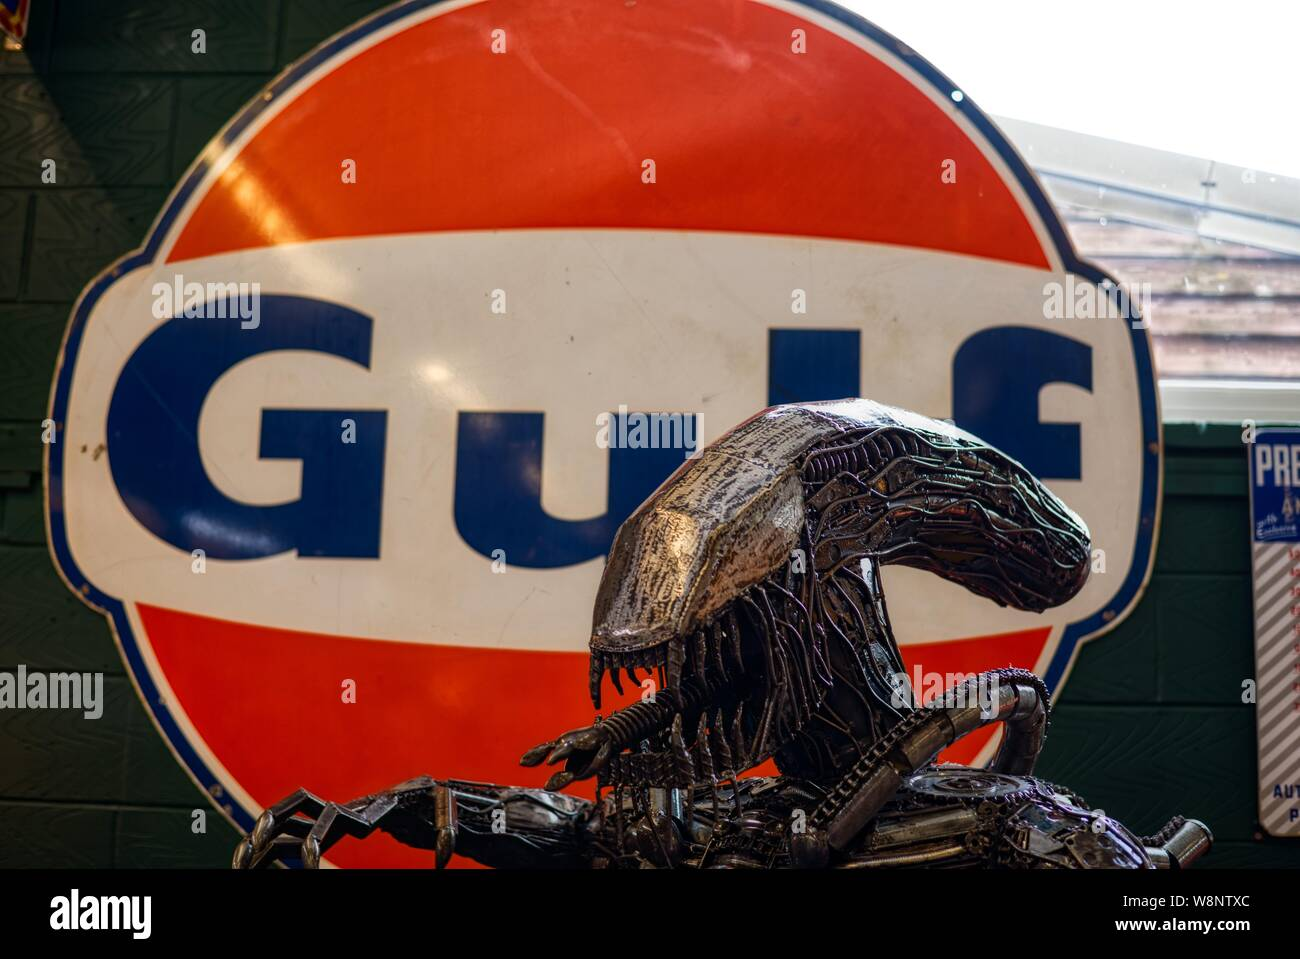 Gulf oil sign and alien in a private car museum at a car show staged by Robert and Tanya Lewis at Old Kiln Farm, Churt, Surrey, UK Stock Photo